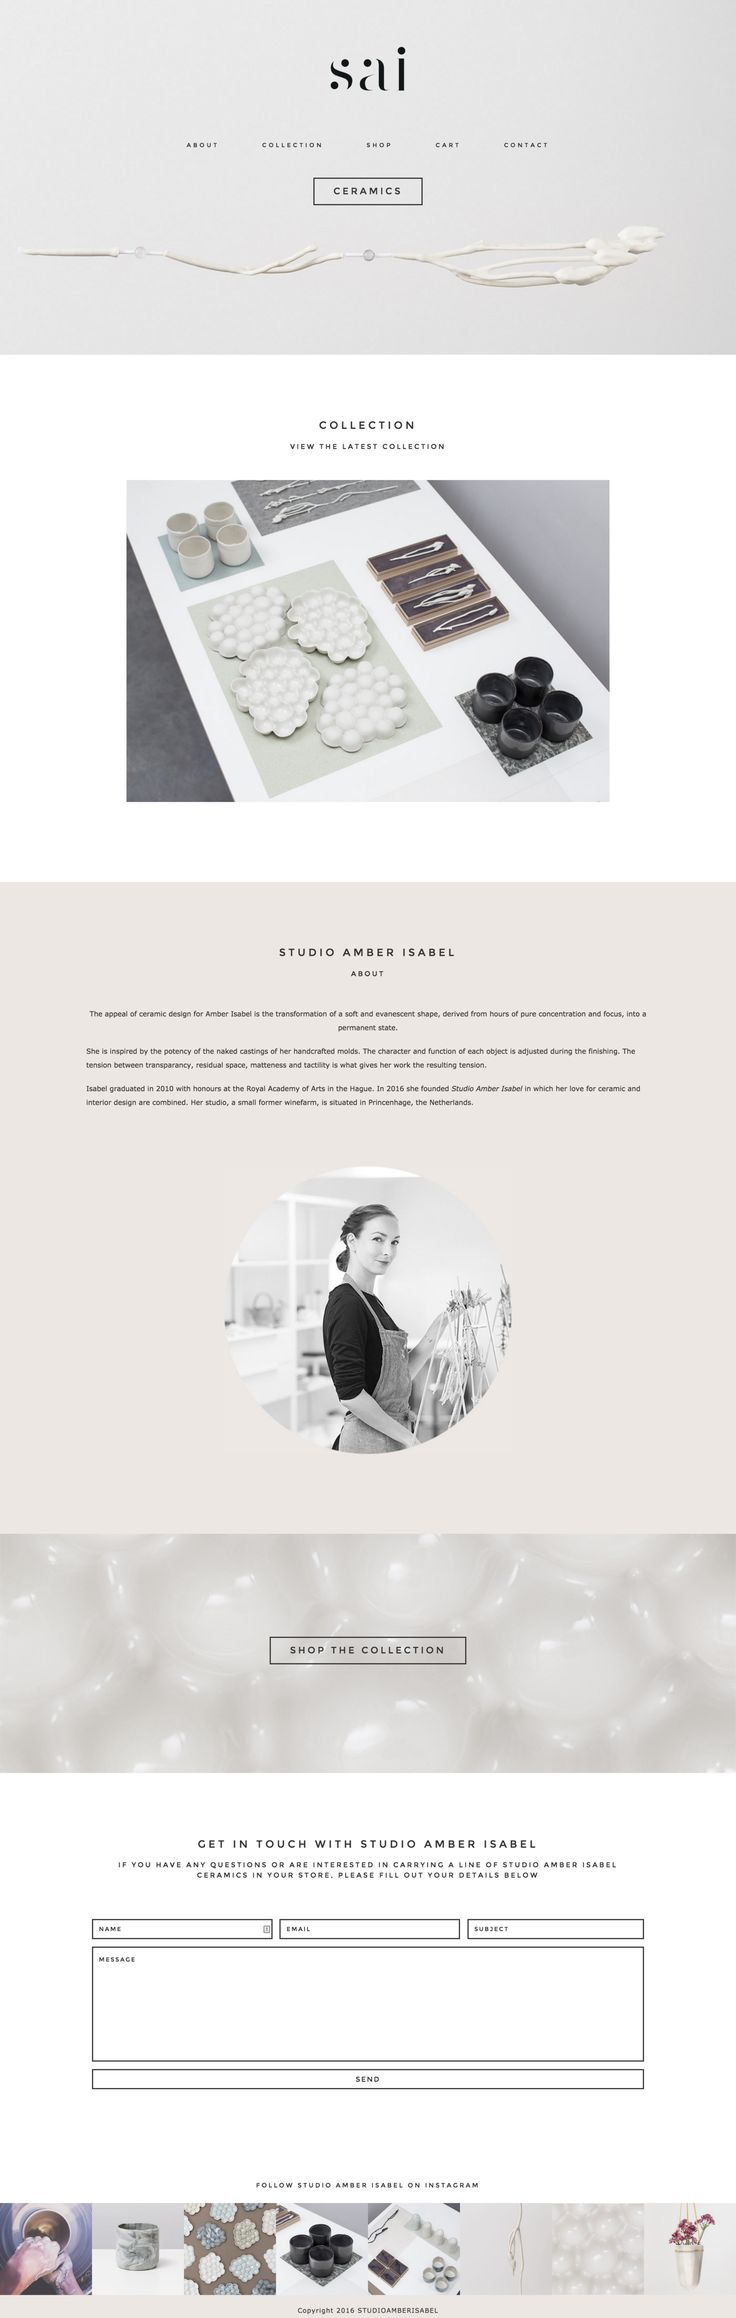 942 best Design Layouts images on Pinterest | Layout design ...